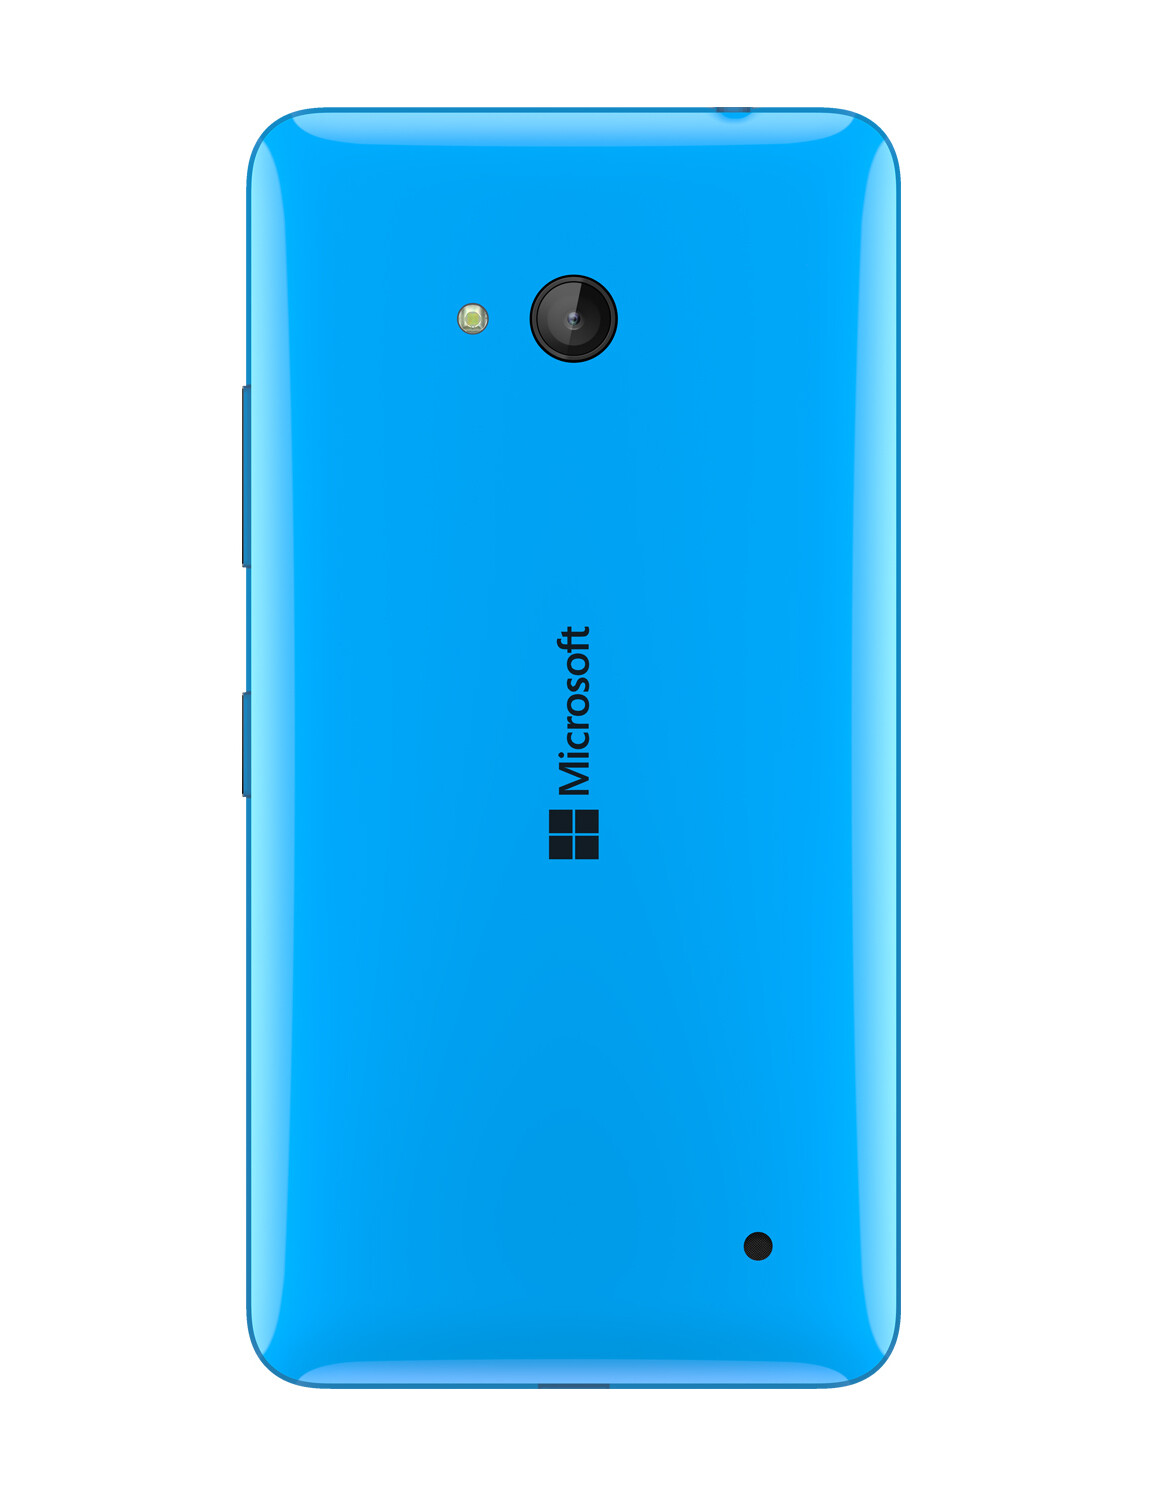 Microsoft Lumia 640 unveiled: colorful and affordable